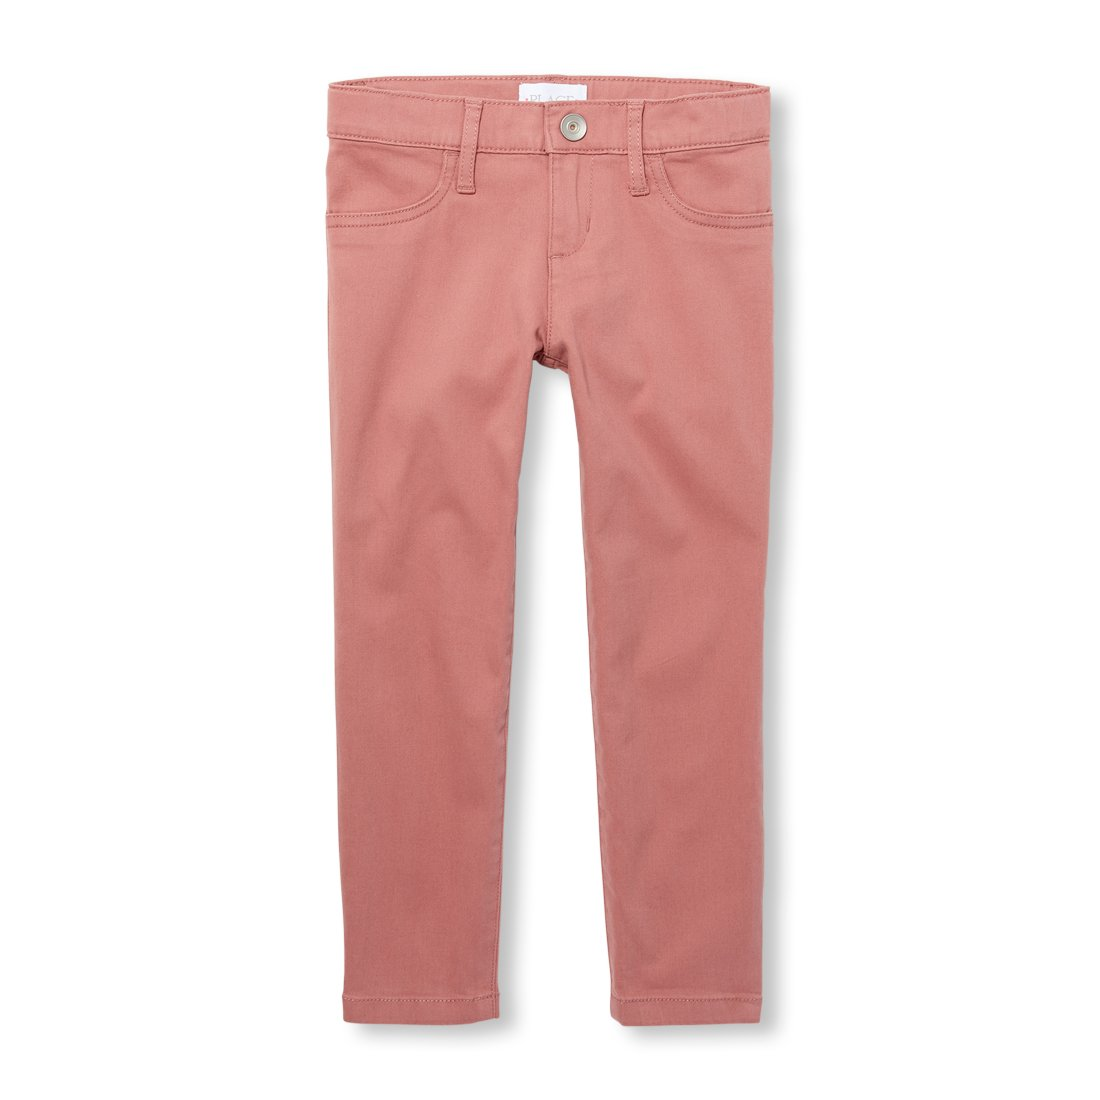 The Children's Place Big Girls' Solid Woven Jeggings The Children' s Place 2114246